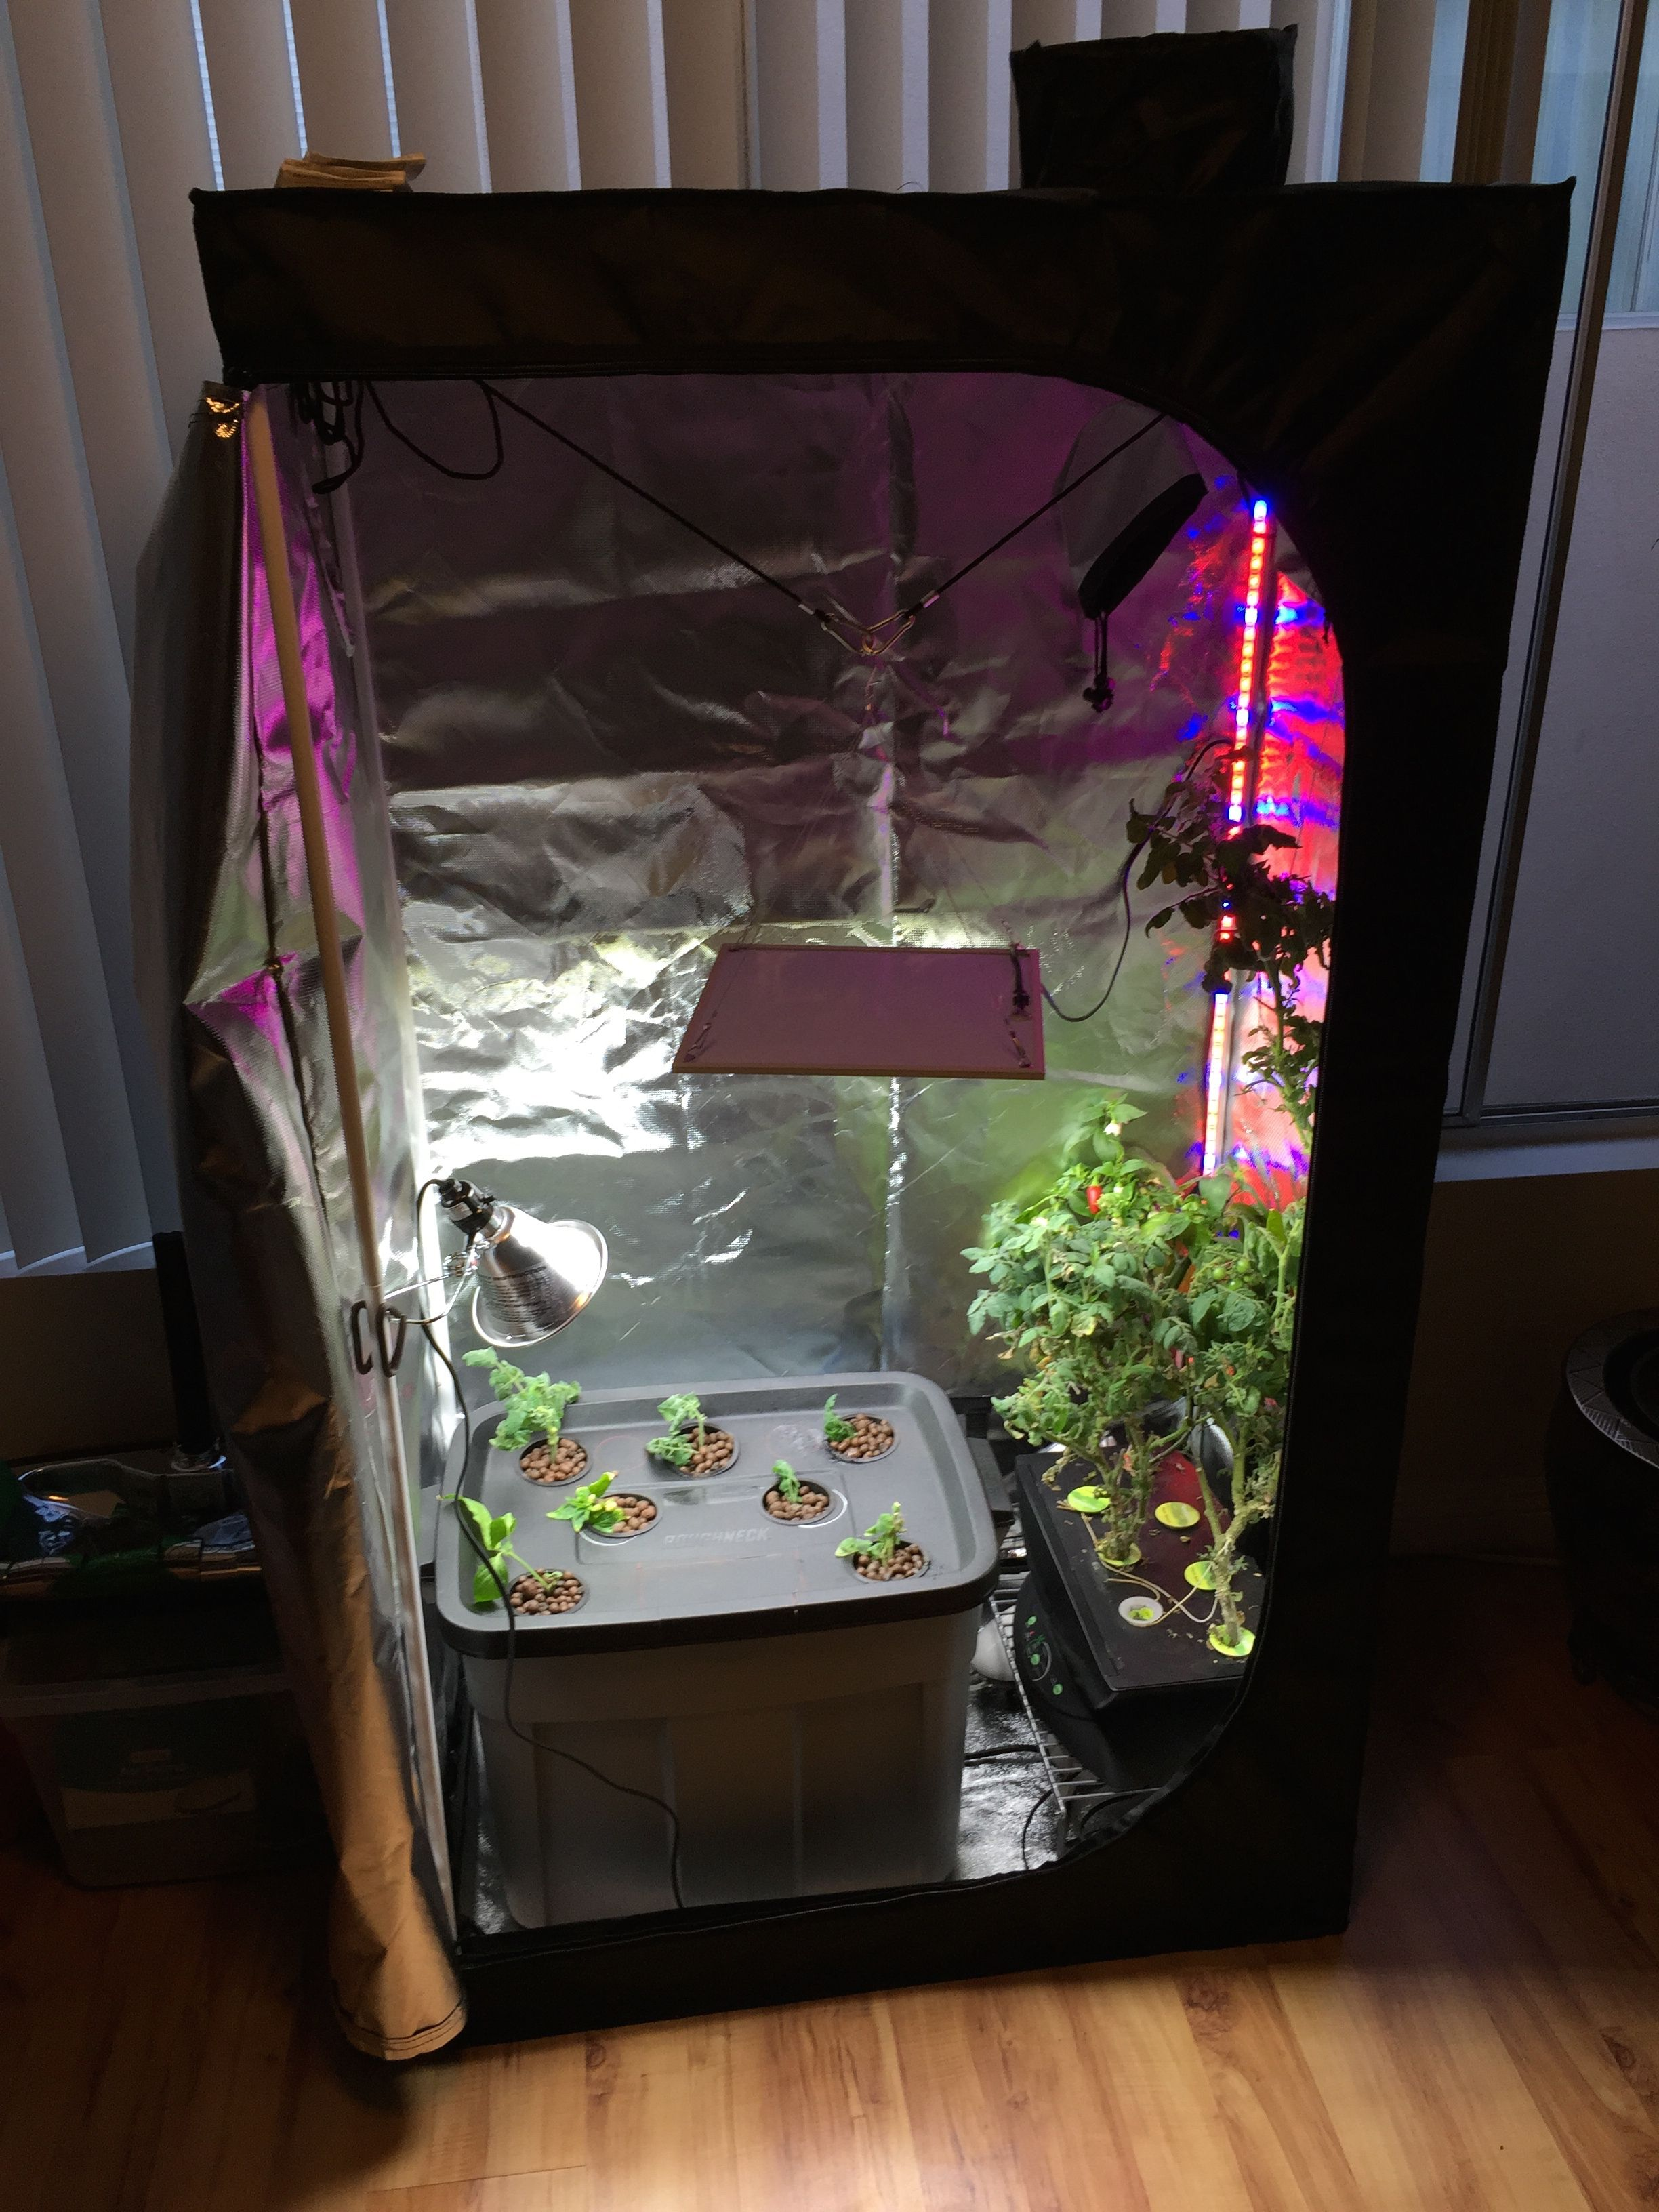 Home Grow Tent. : diy indoor grow tent - memphite.com